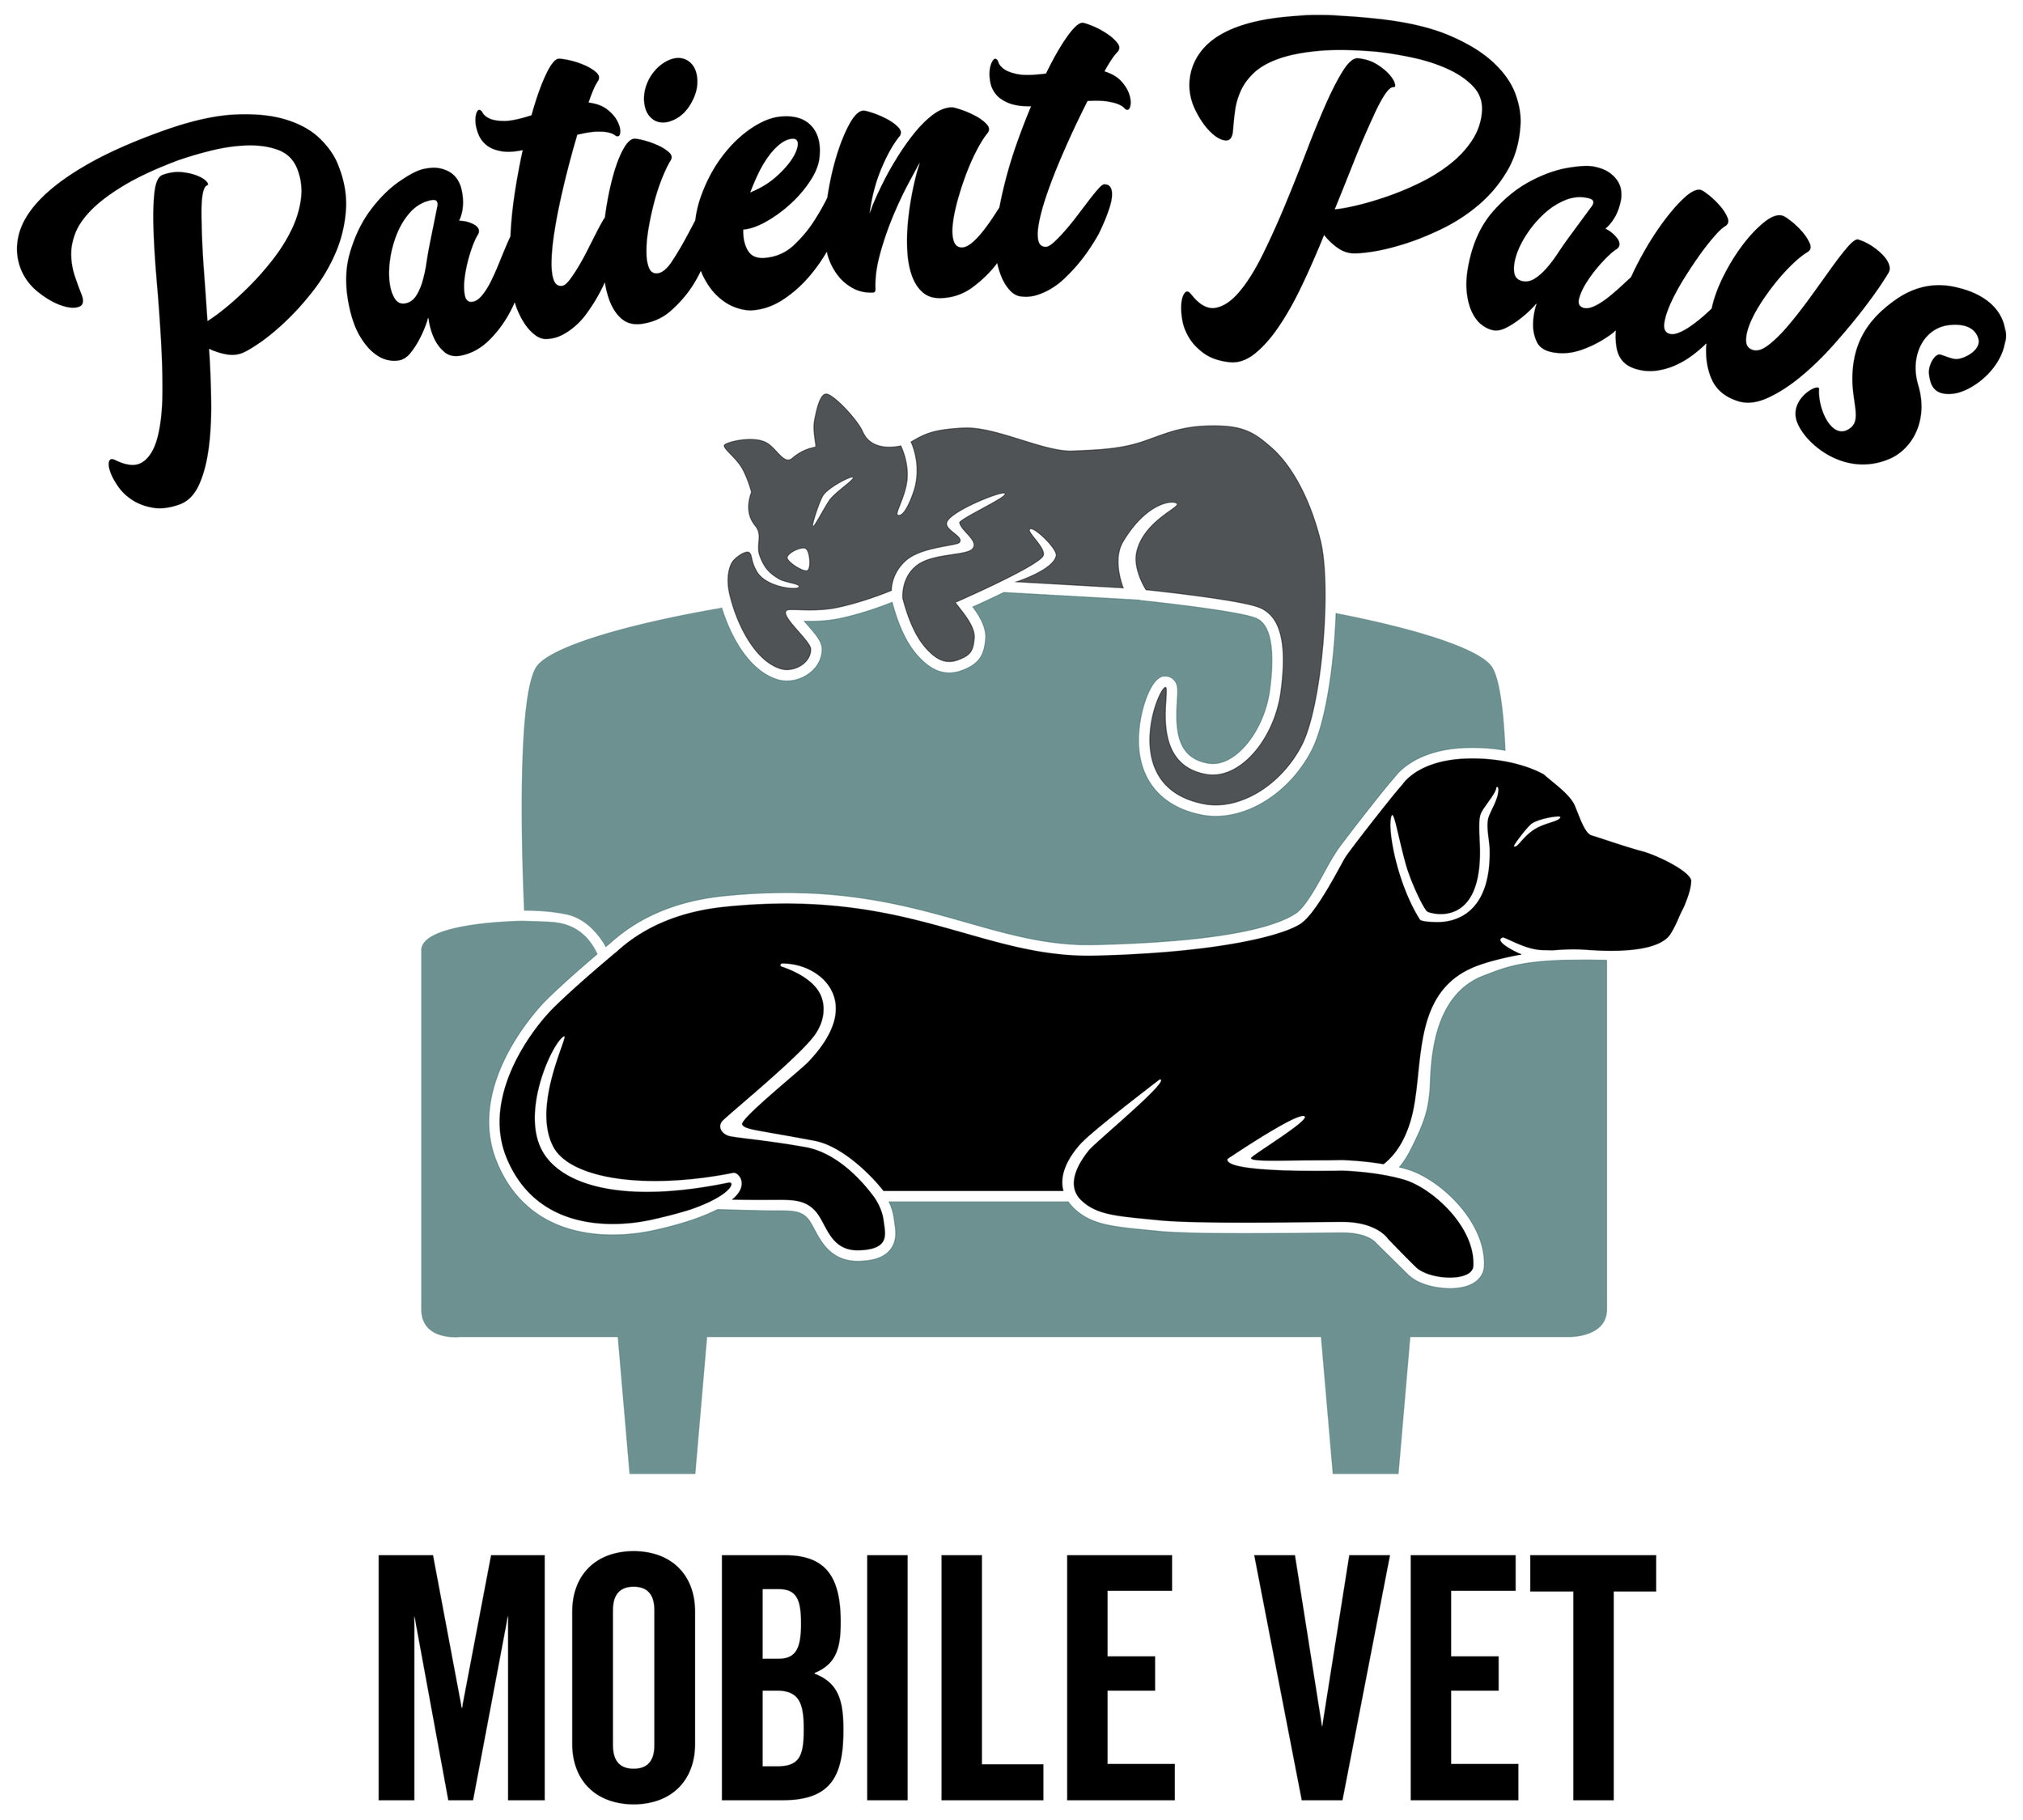 Mobile Vet Near Me Fees Patient Paws Mobile Vet